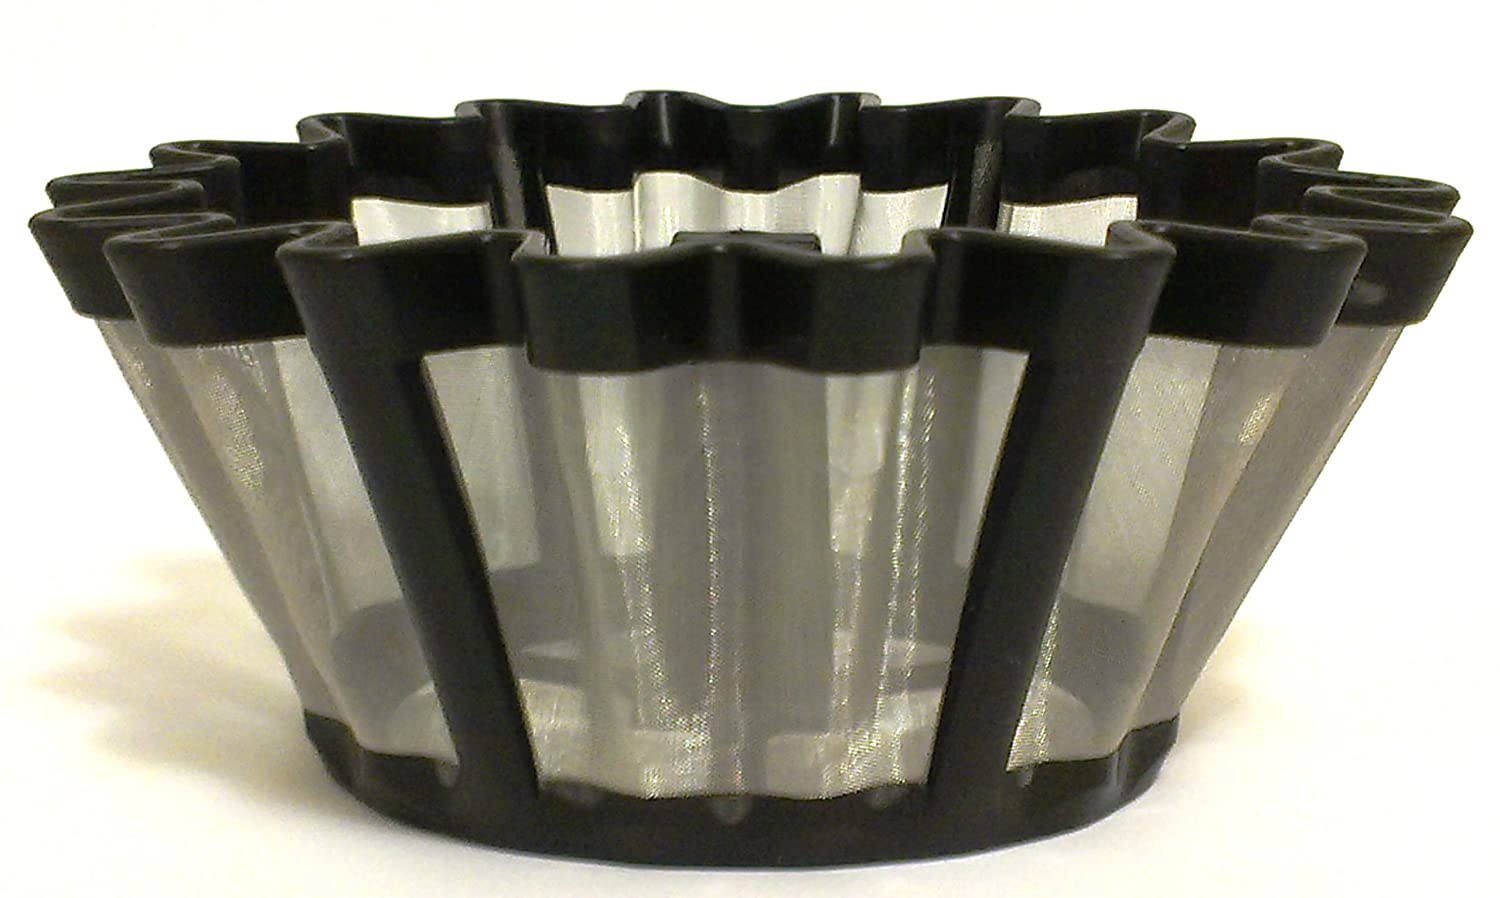 Universal Gold Tone Coffee Filter- The #1 Permanent Coffee Filter. (6-12 cup) EZ World distribution #106